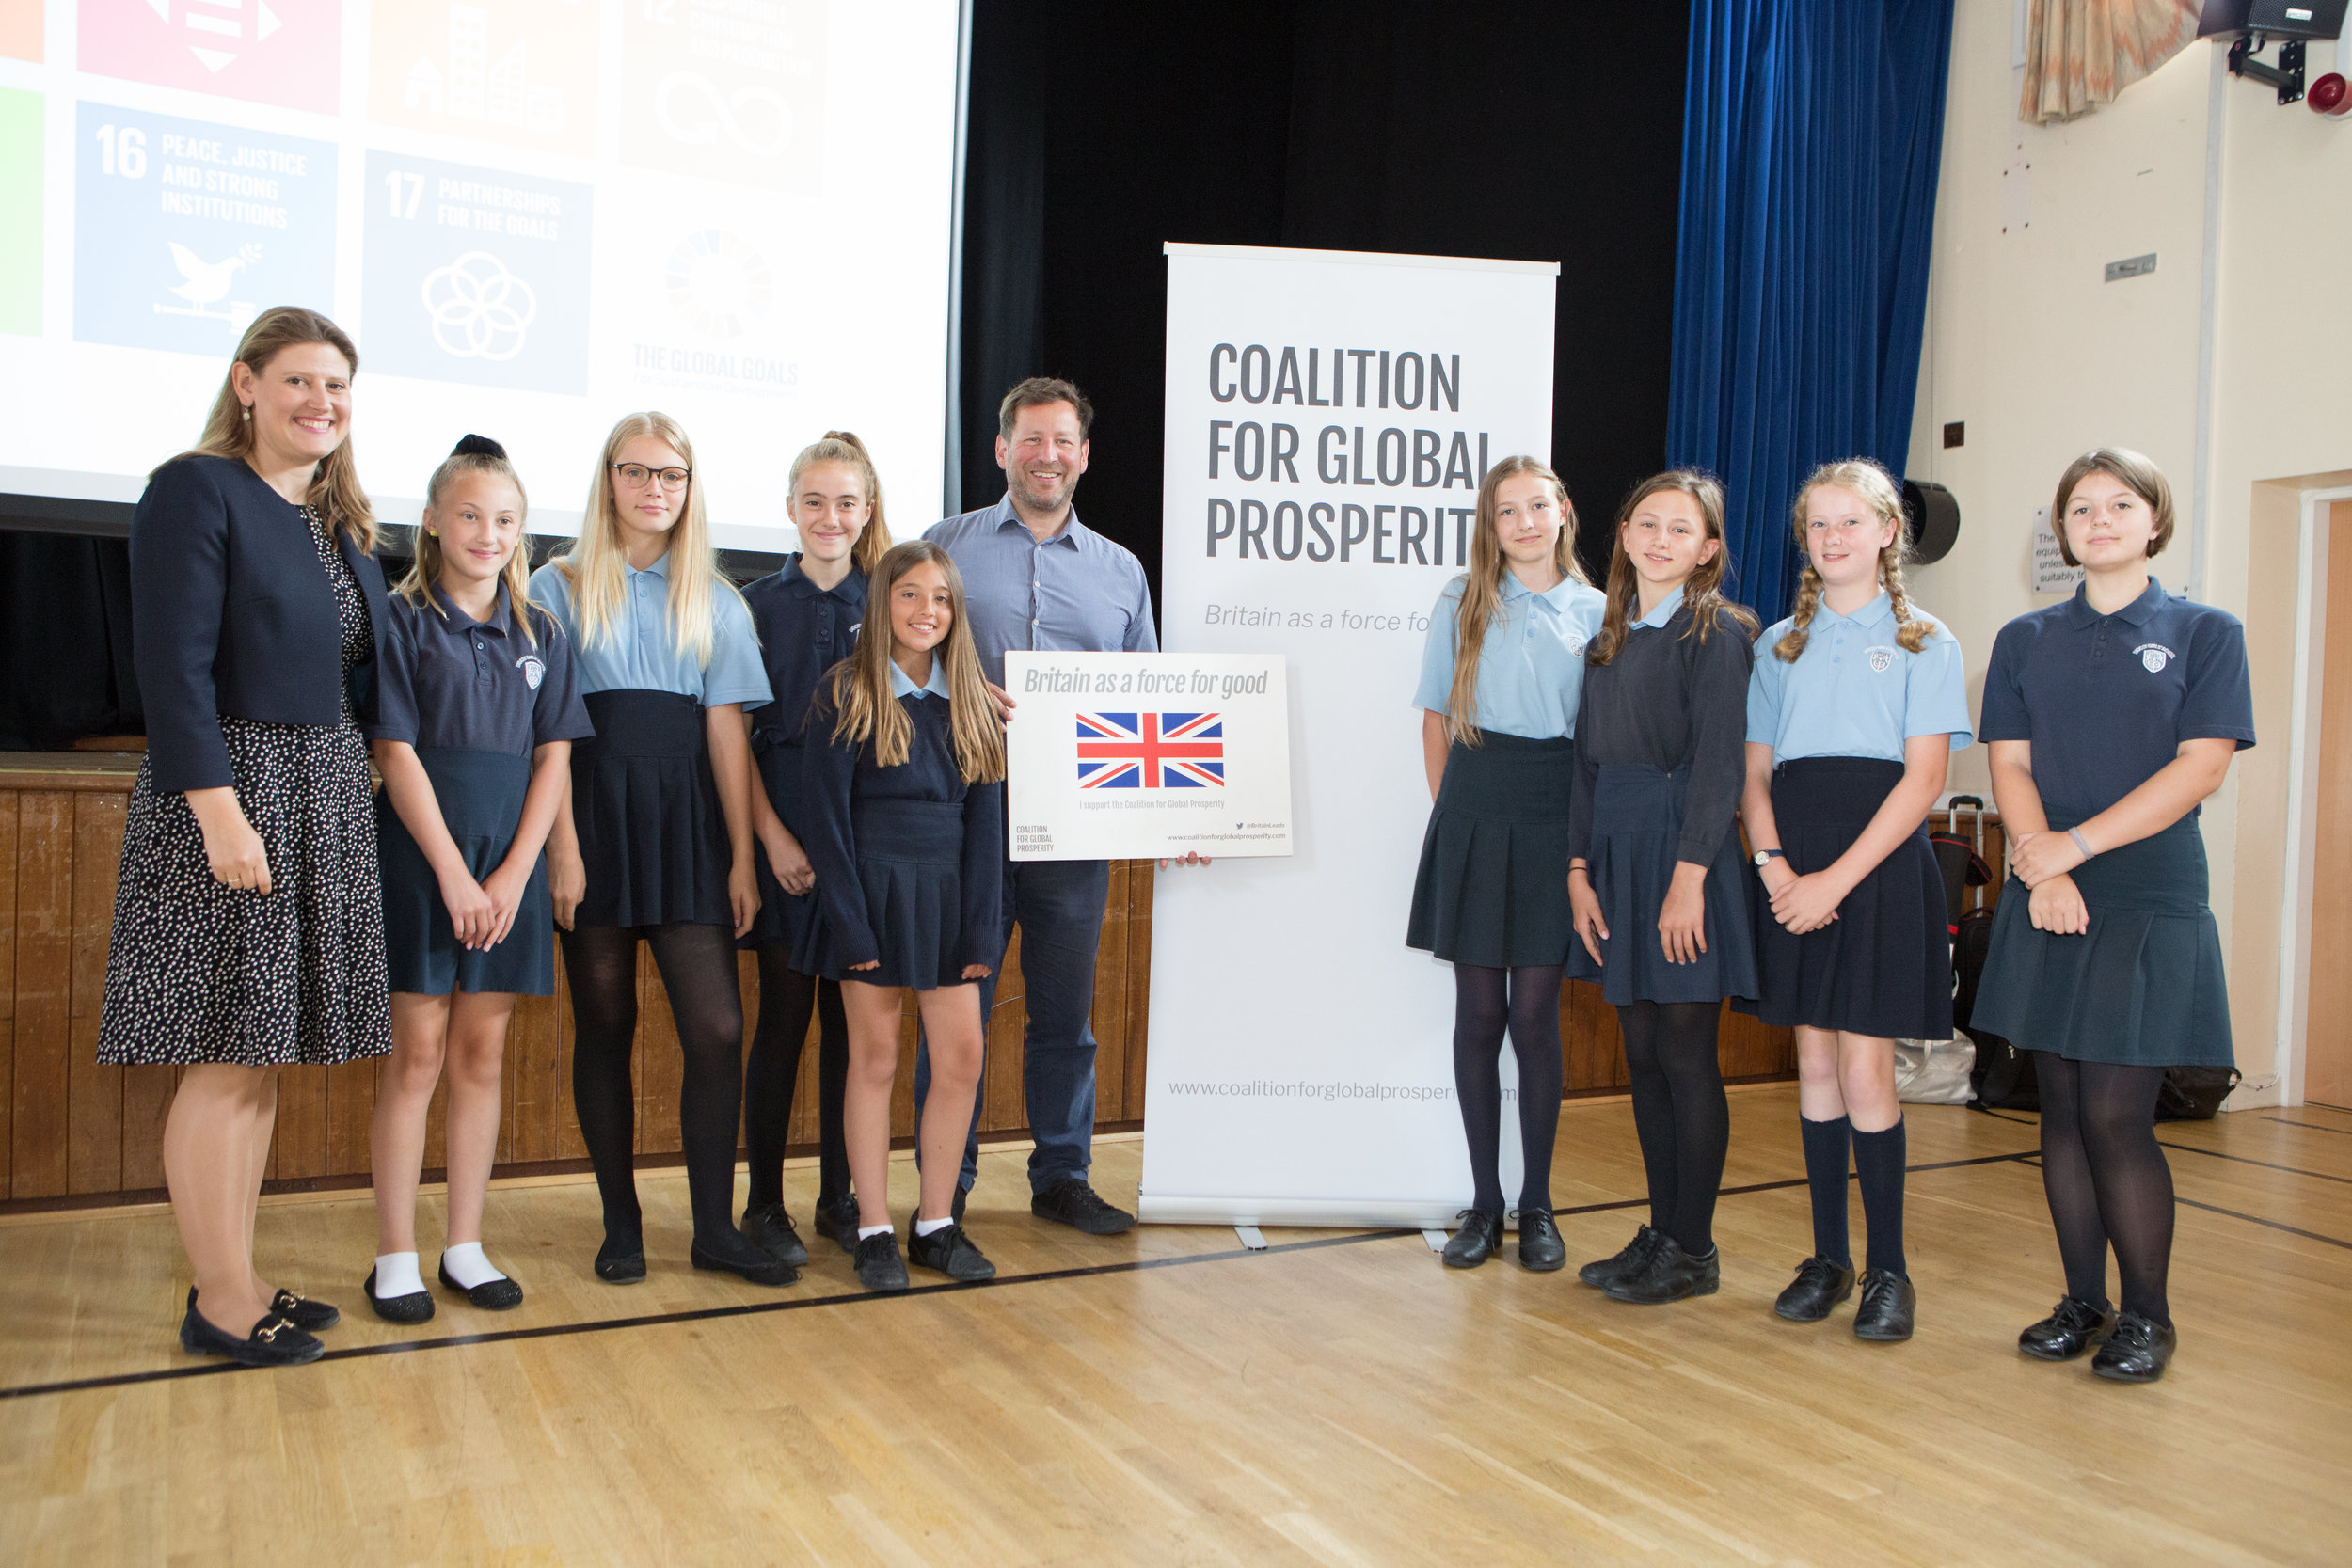 Rt Hon Ed Vaizey MP & Theo Clarke, Founder & Chief Executive of the Coalition with pupils at Didcot Girls' School